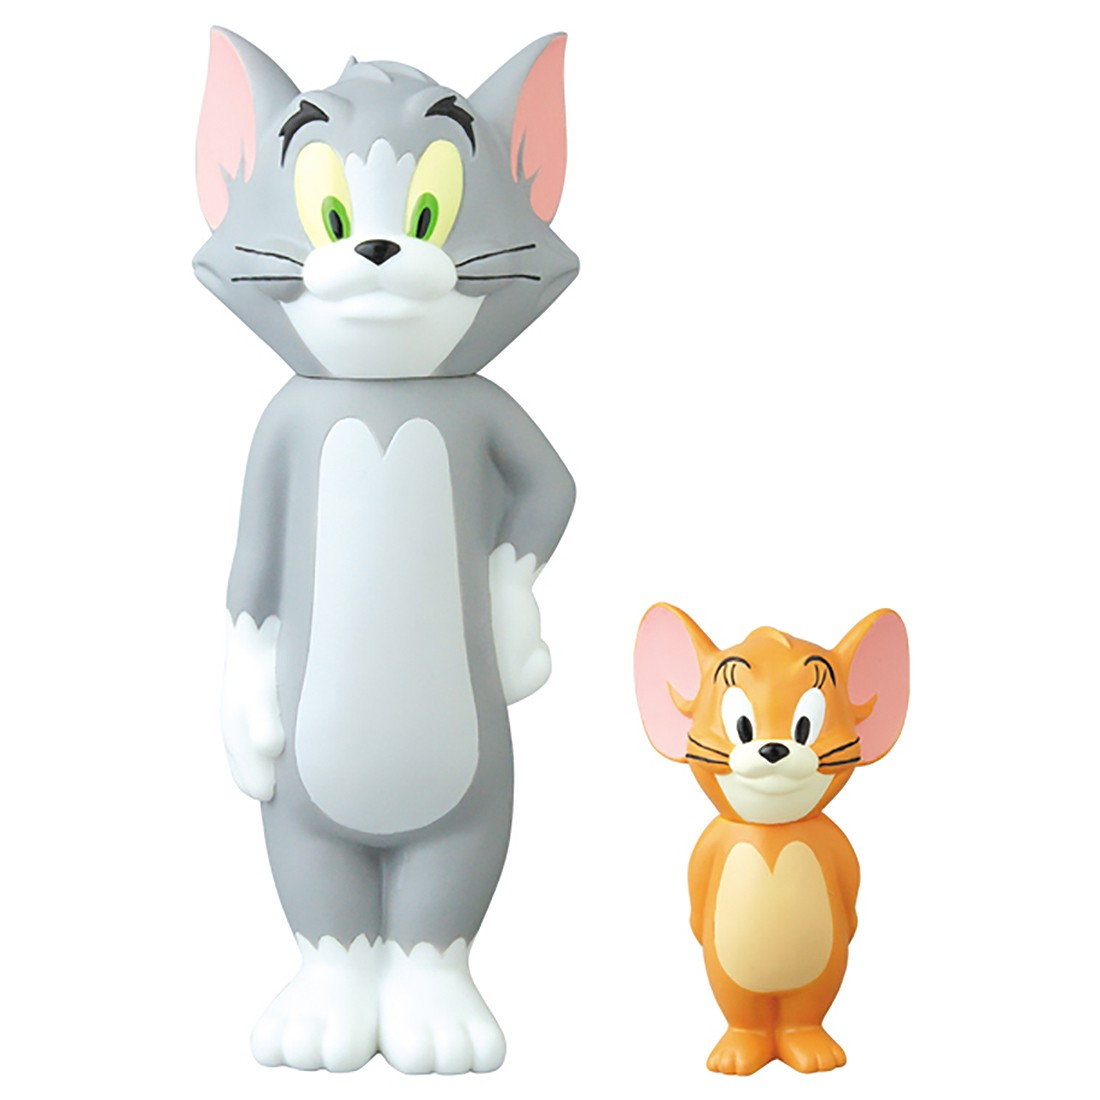 PREORDER - Medicom VCD Tom And Jerry Figures (gray / brown)